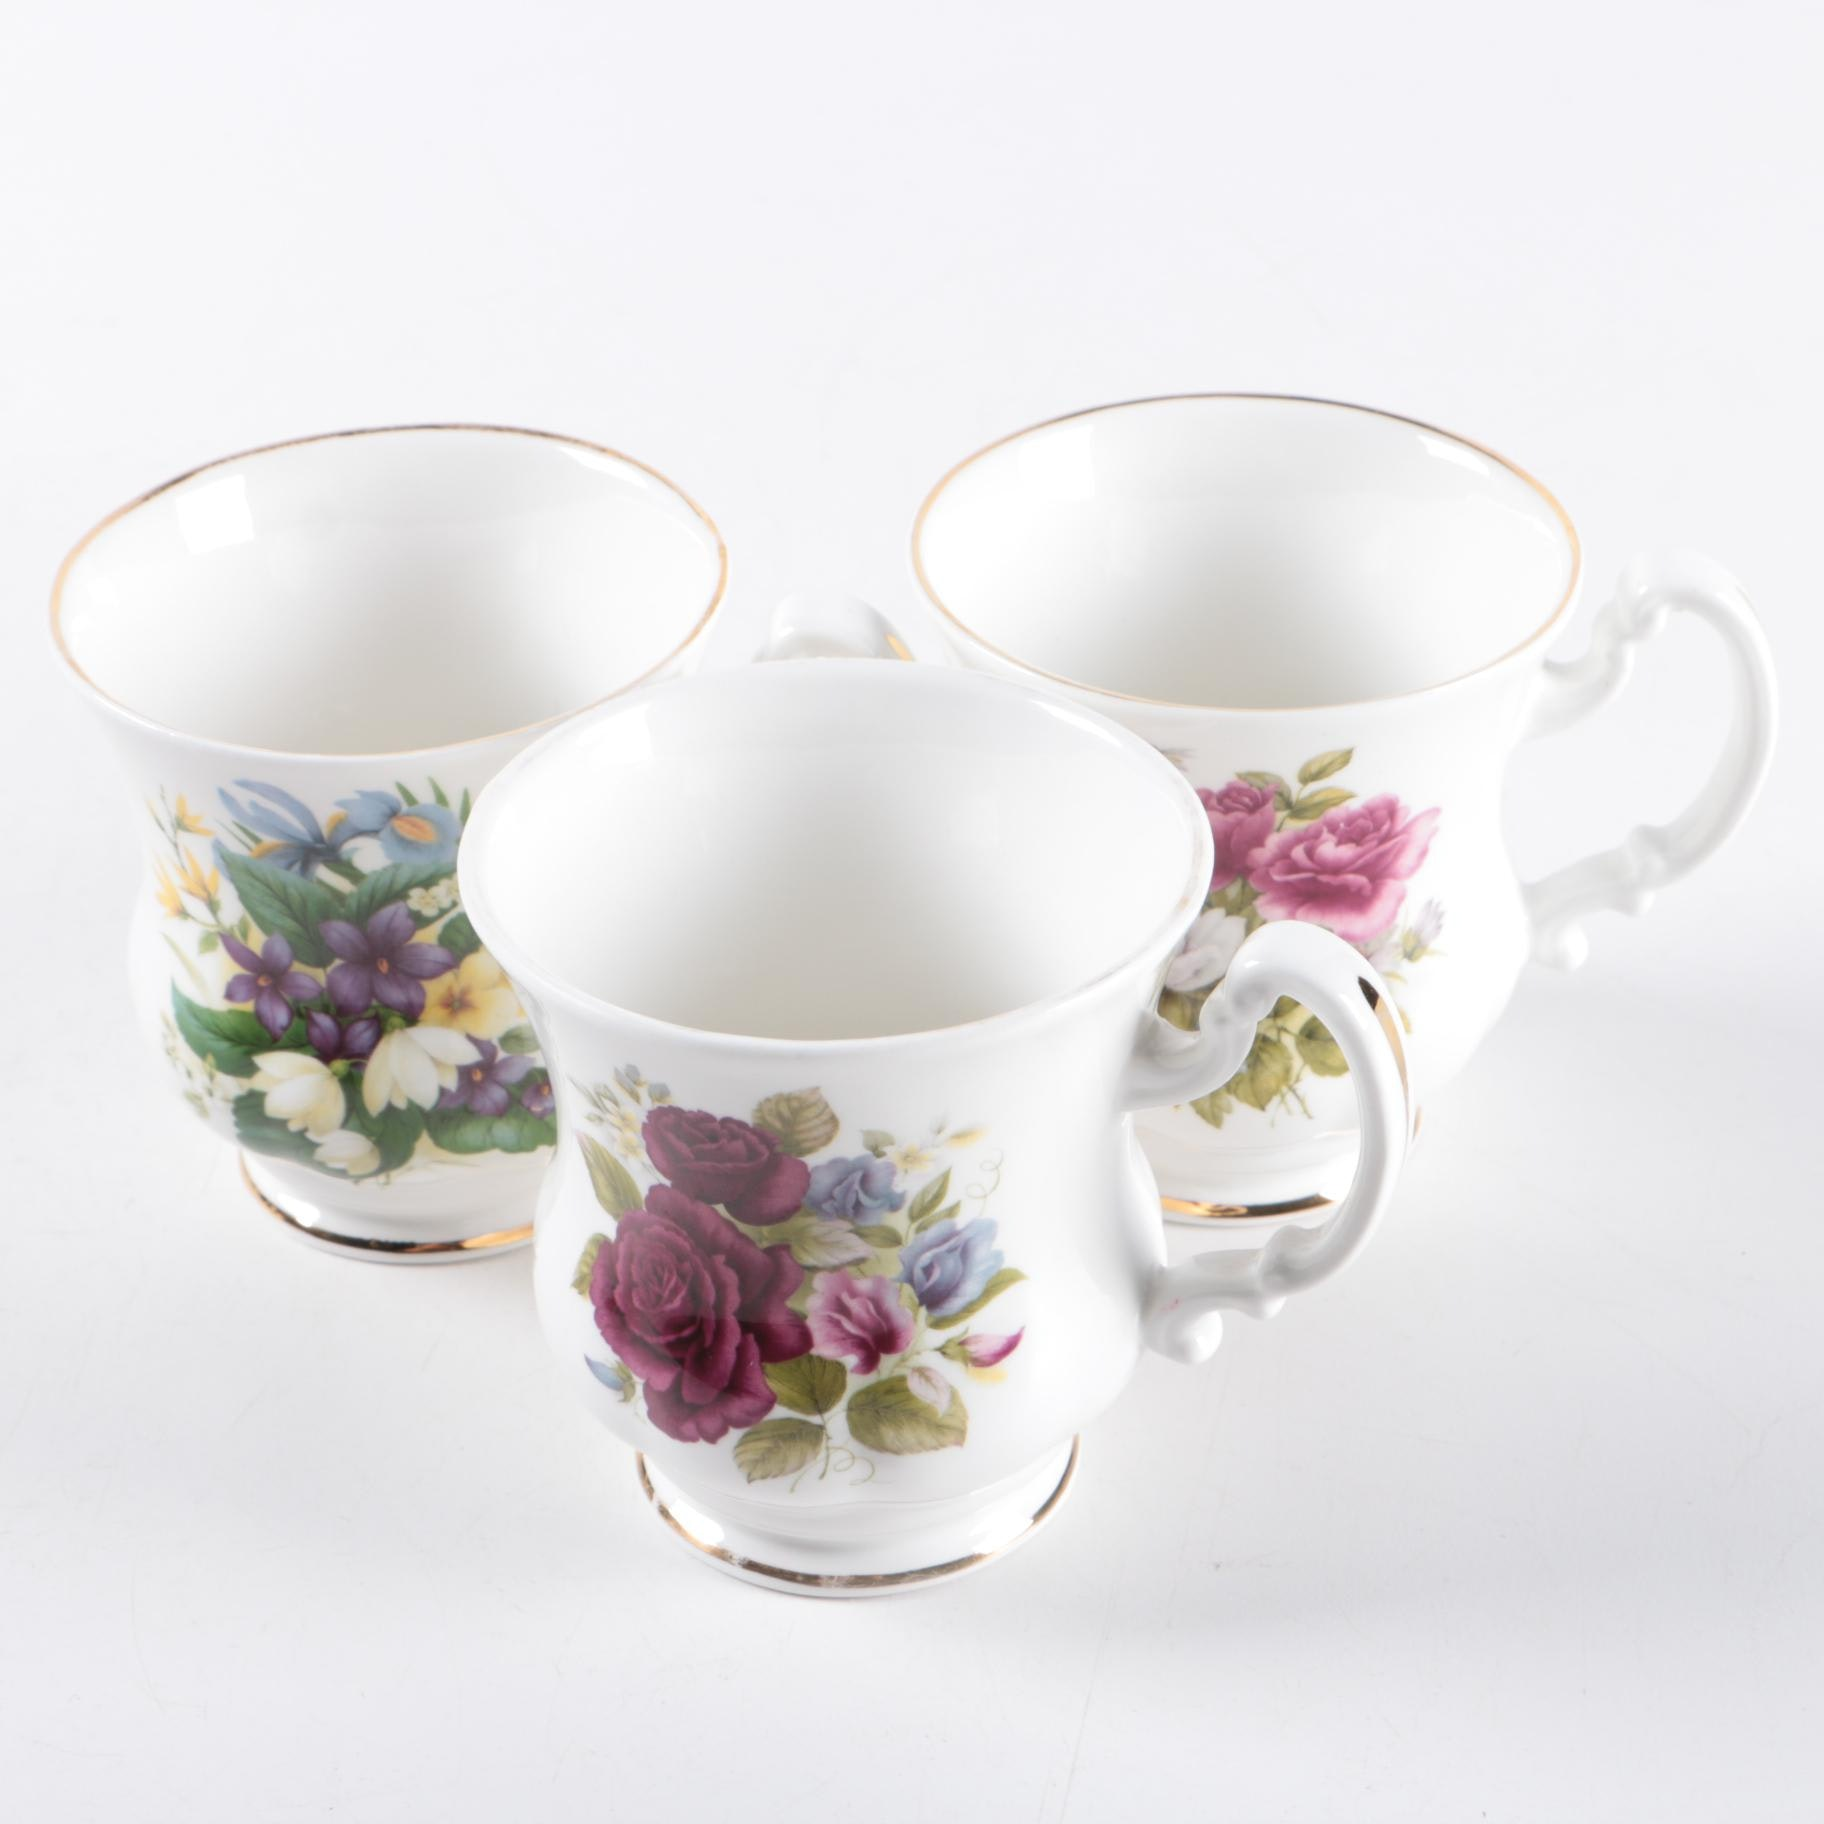 Royal Park Bone China Teacups